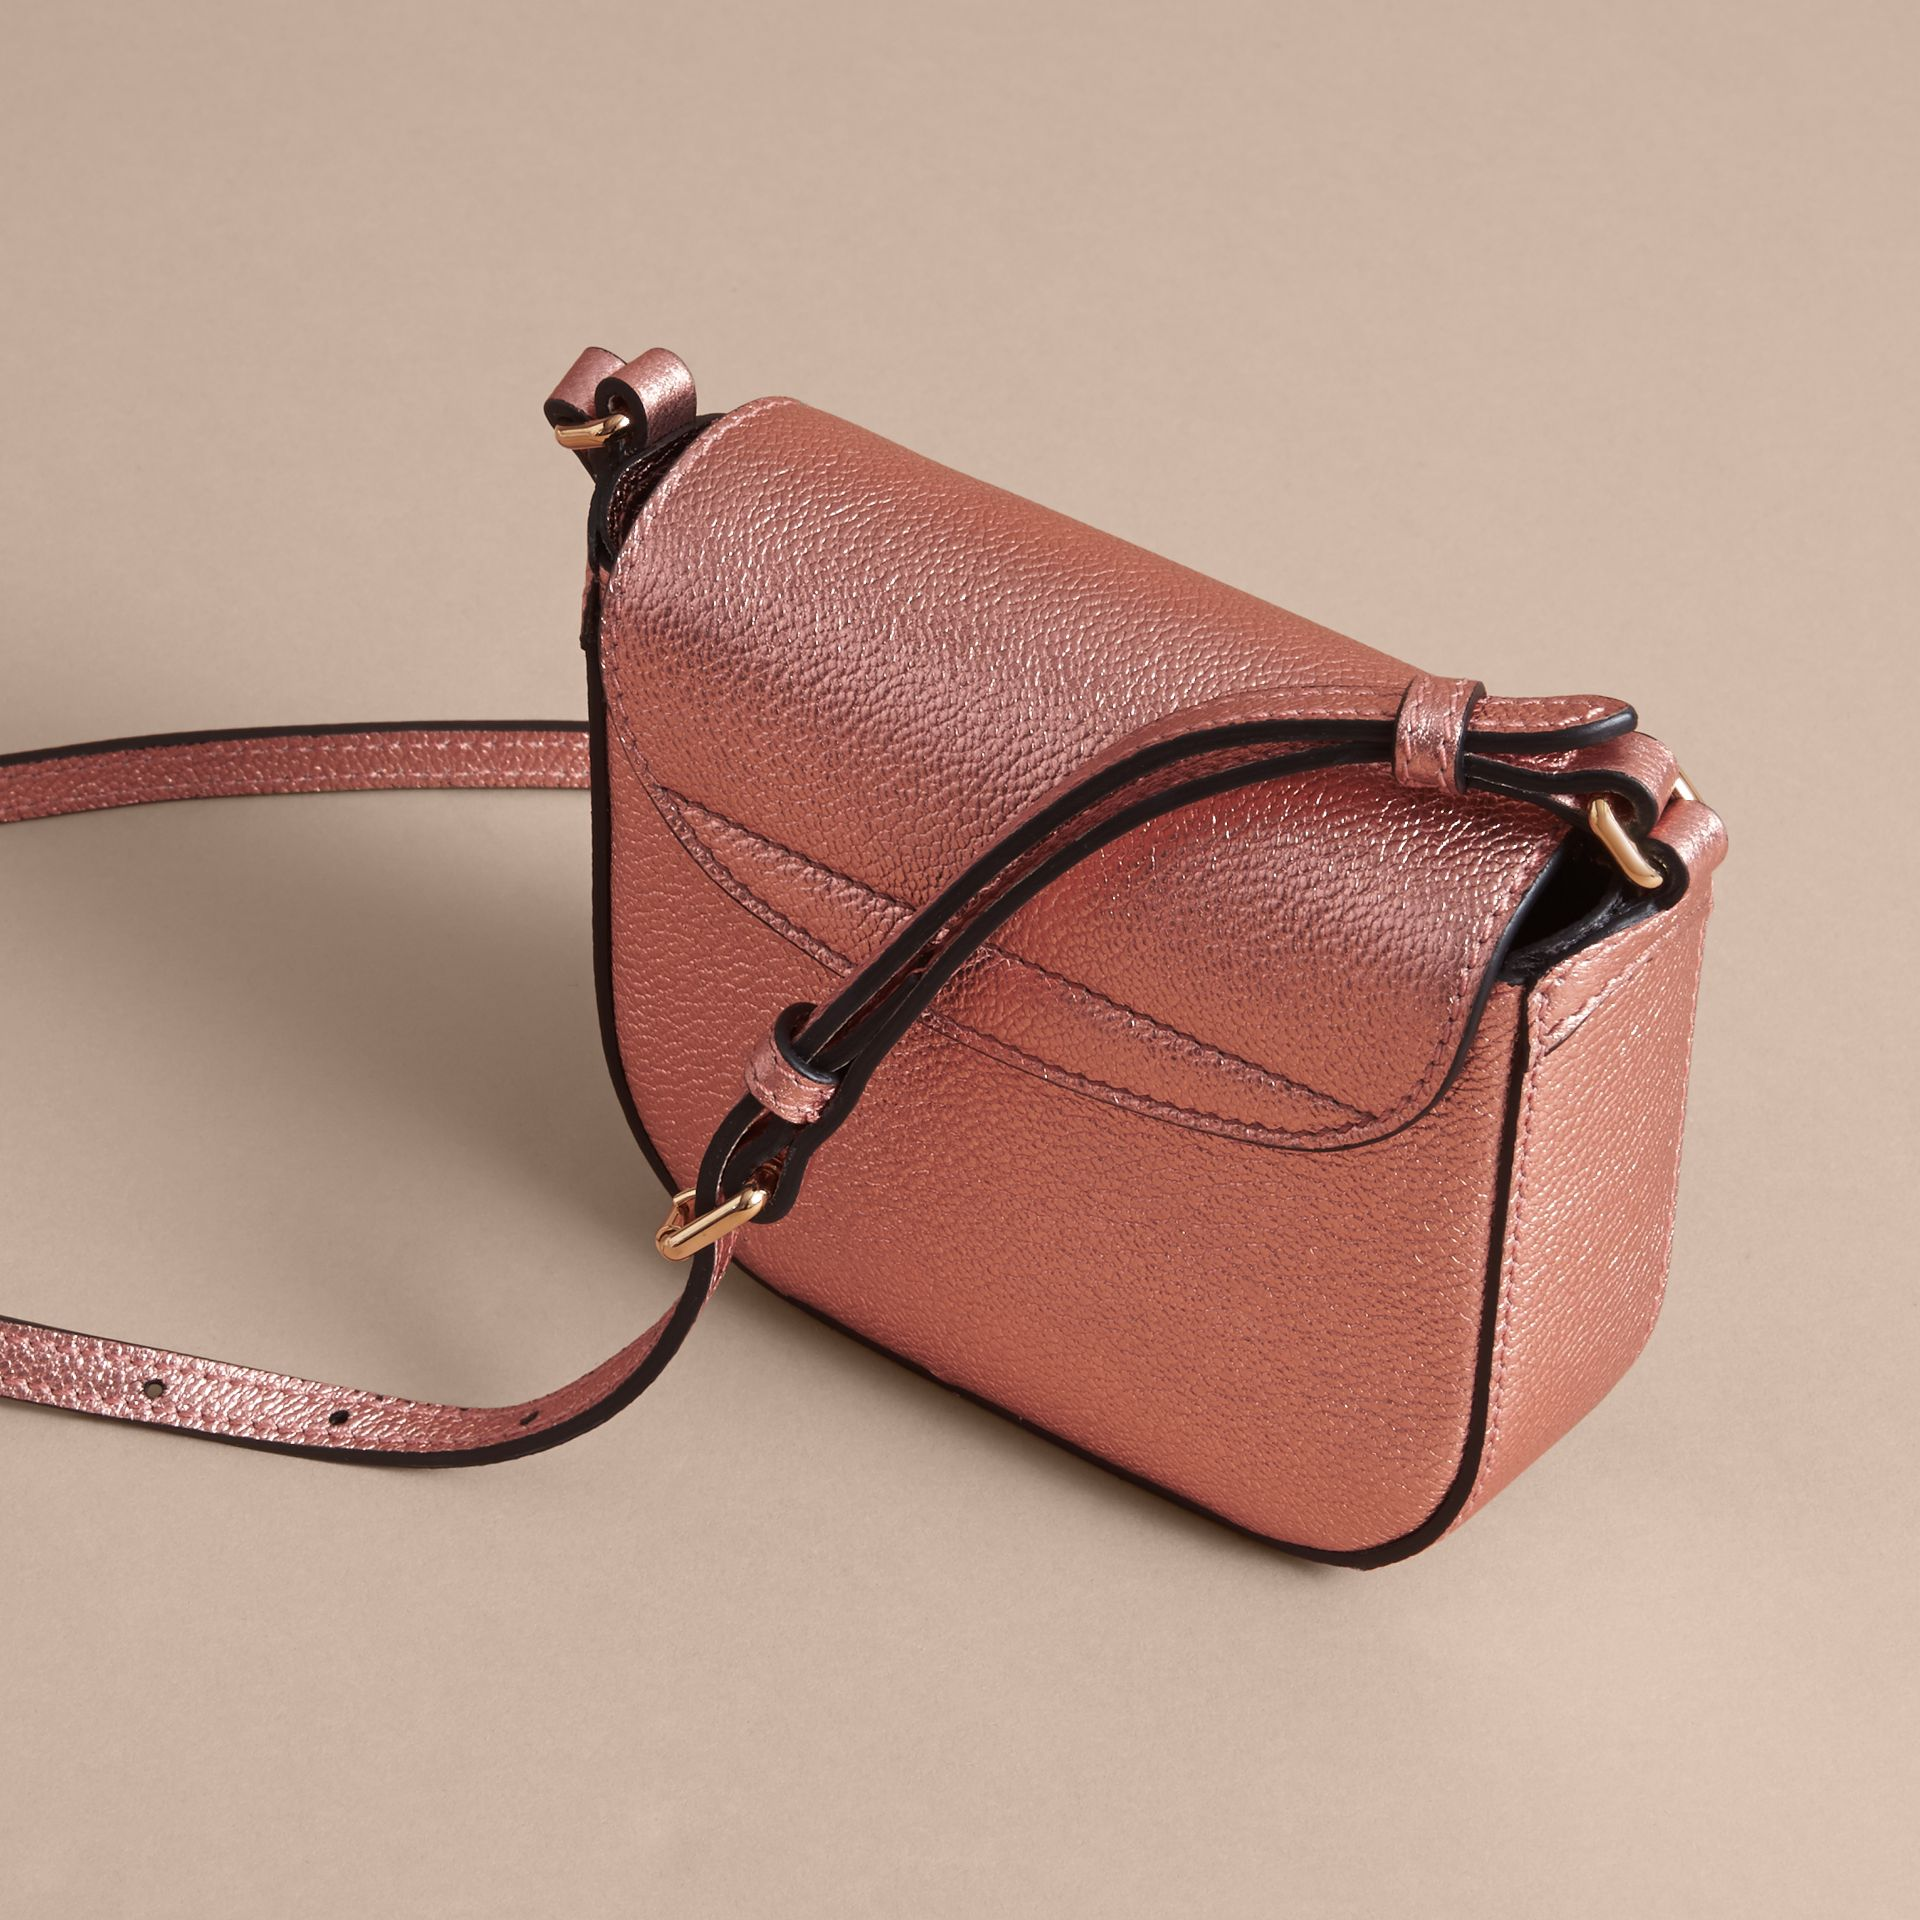 Metallic Leather Crossbody Bag in Copper Pink - Girl | Burberry Australia - gallery image 3